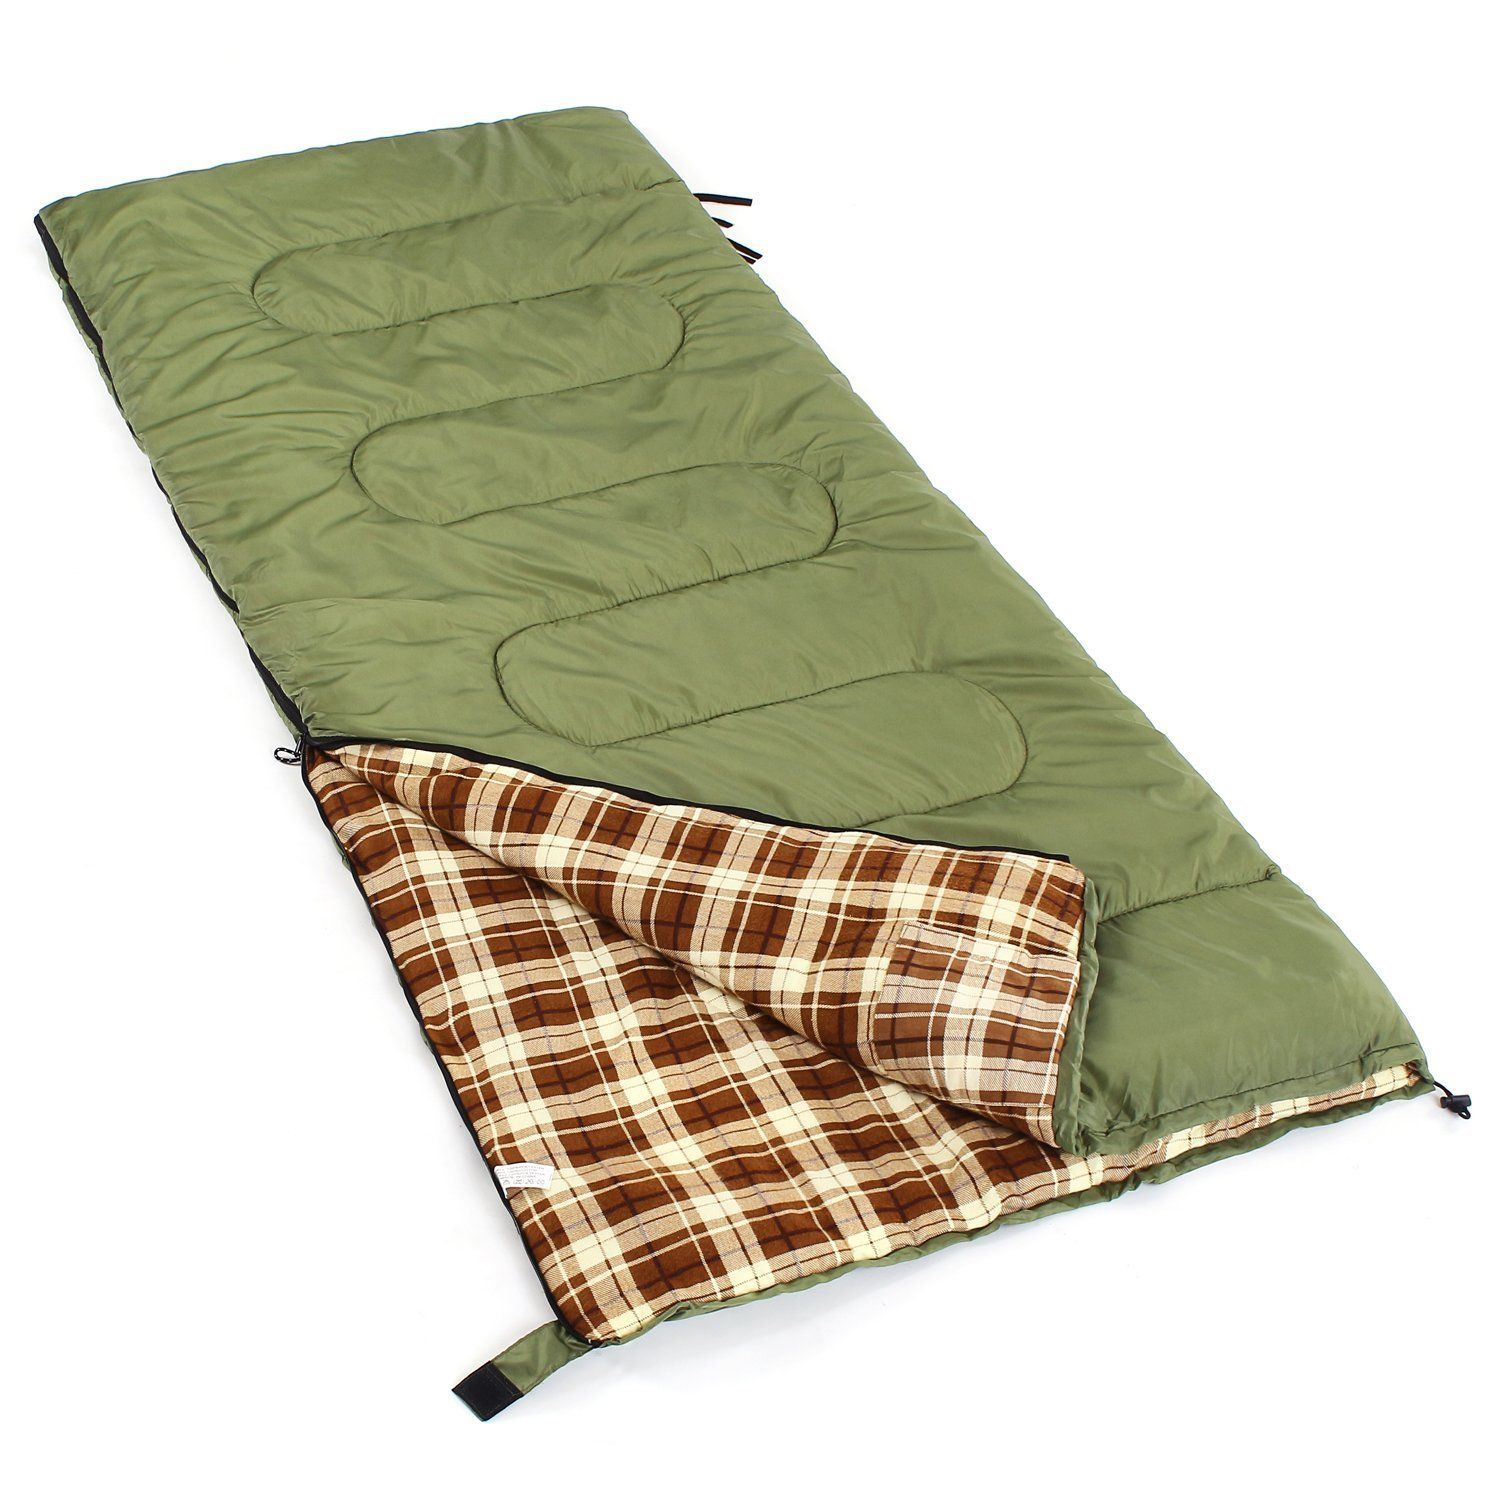 Camp Solutions Sleeping Bag Green Three Seasons Portable Lightweight And Heavy Duty Suitable For 23 Degree F Fit A 6 5 Comfortably Or Two